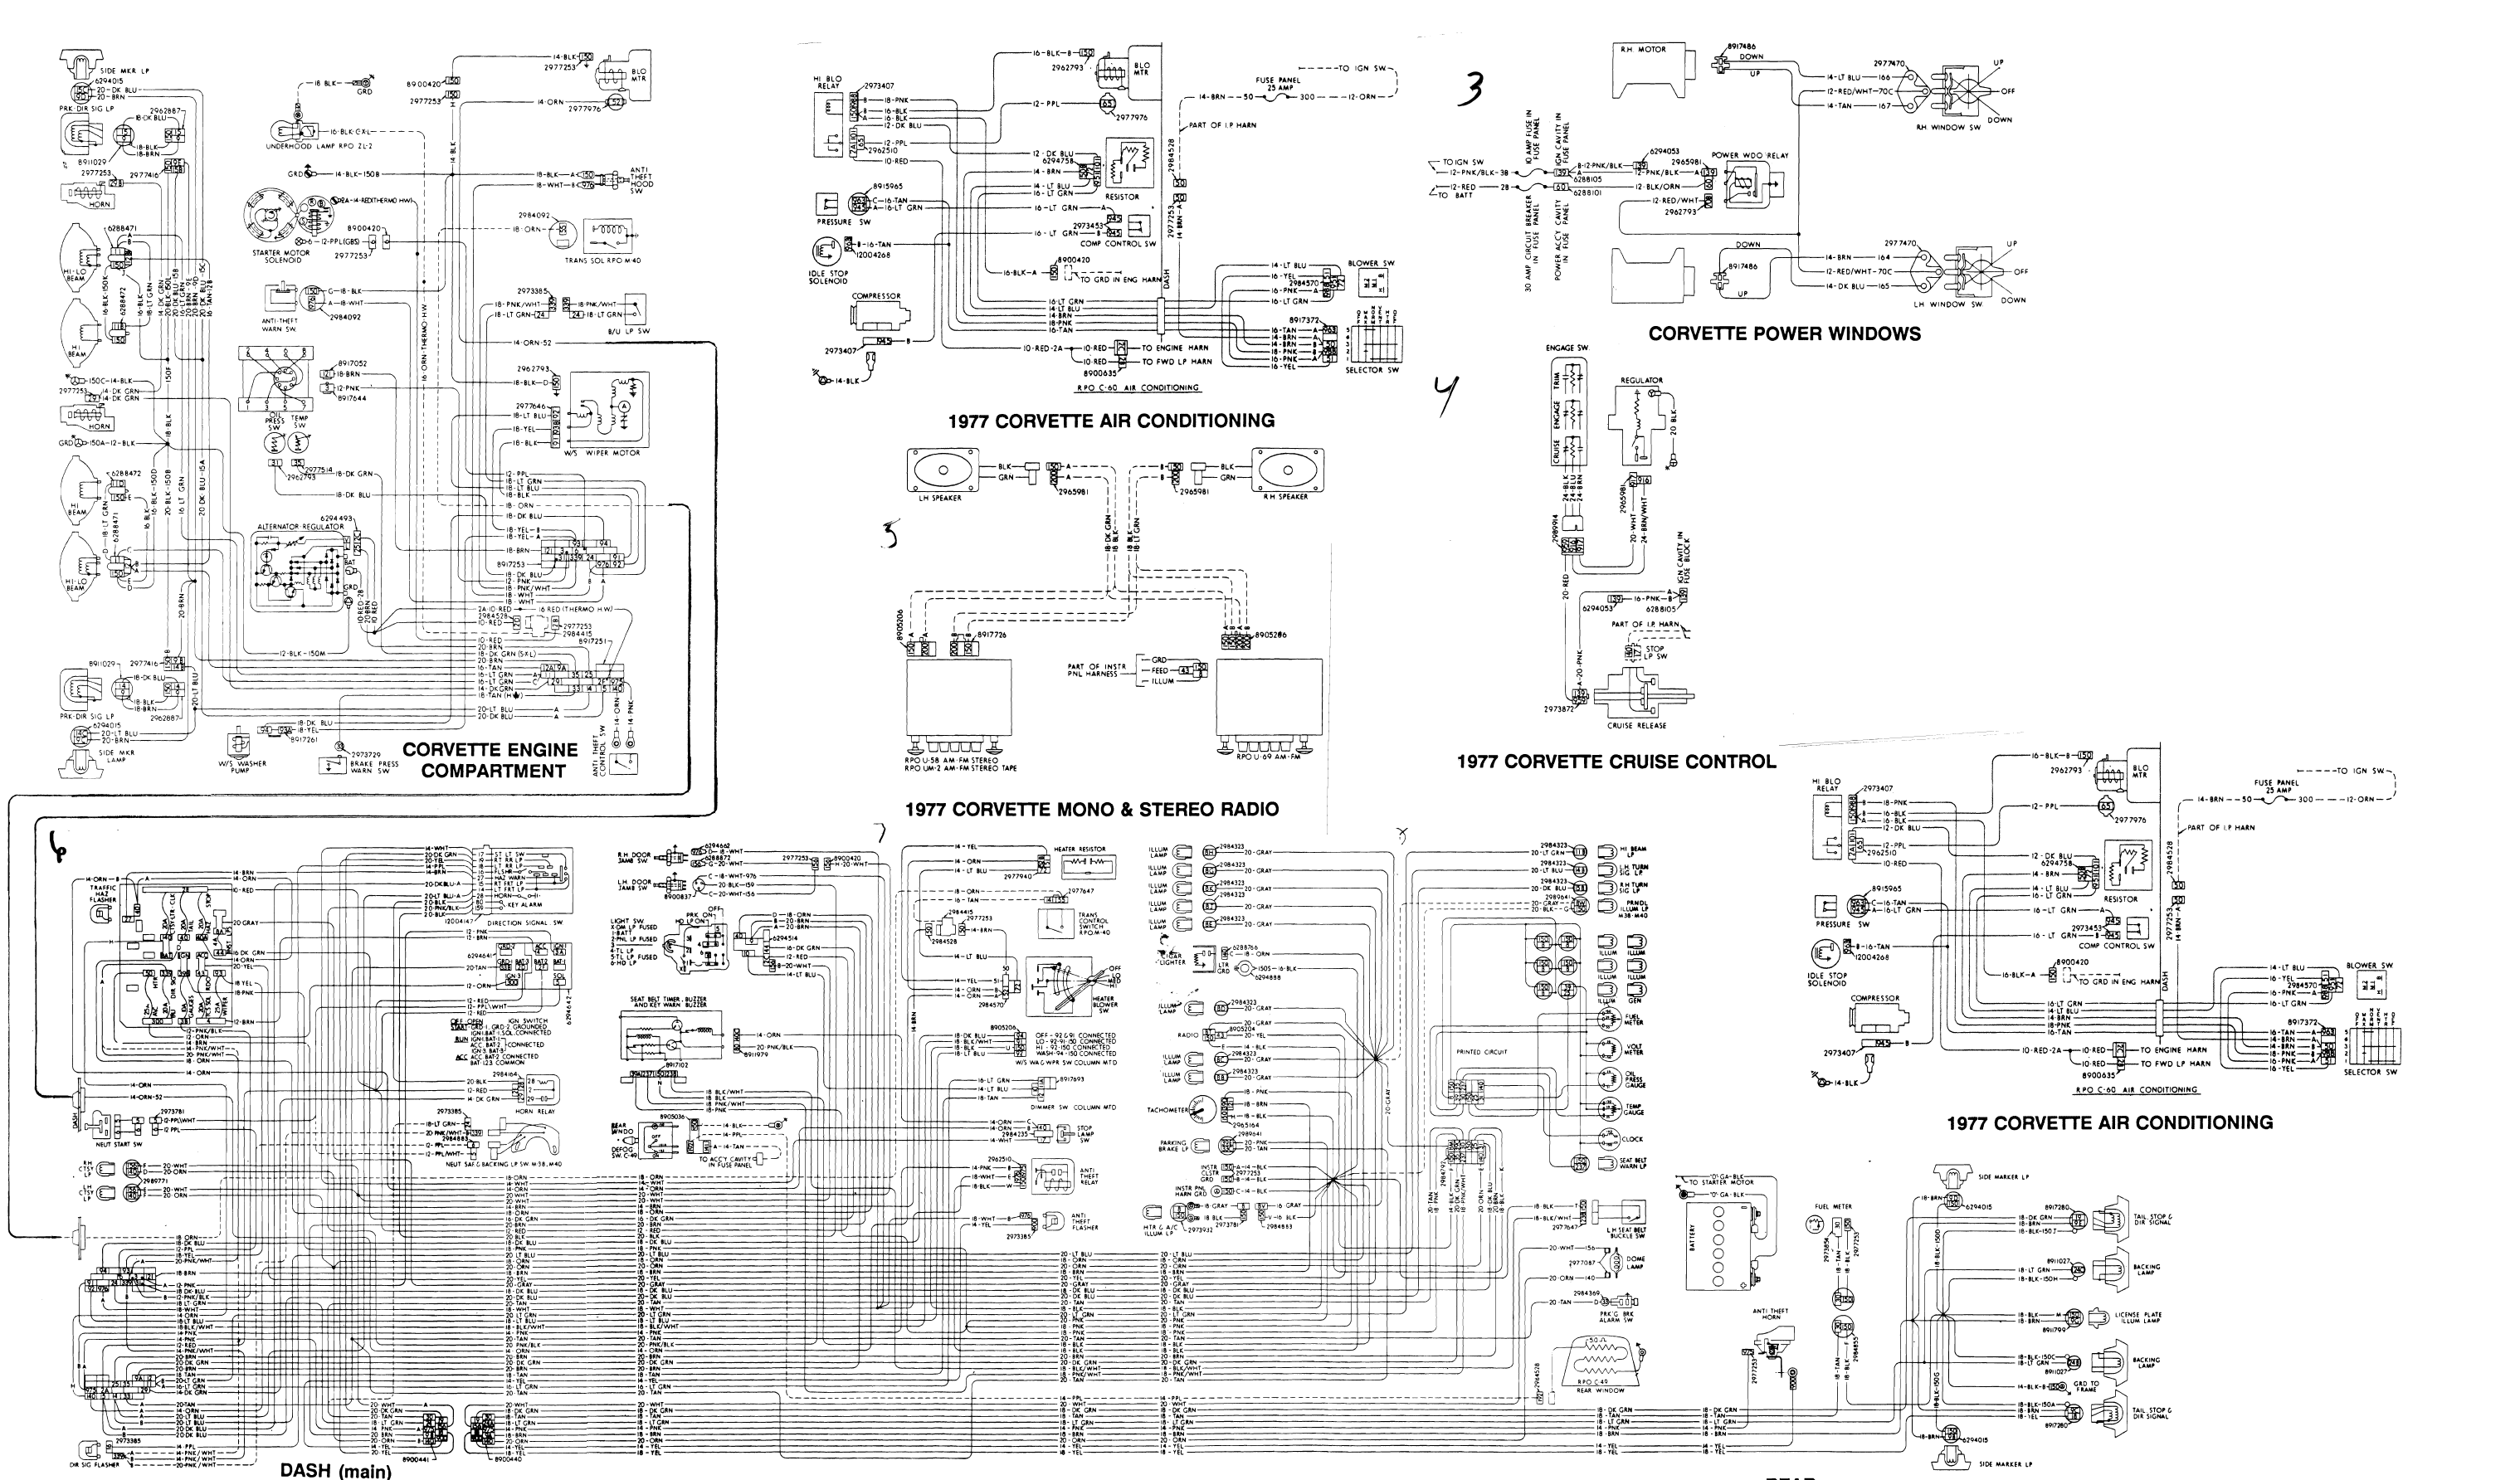 Corvette C4 Schematic Auto Electrical Wiring Diagram 1958 Corvette Dash  Wiring Diagram C4 Corvette Dash Wiring Diagram